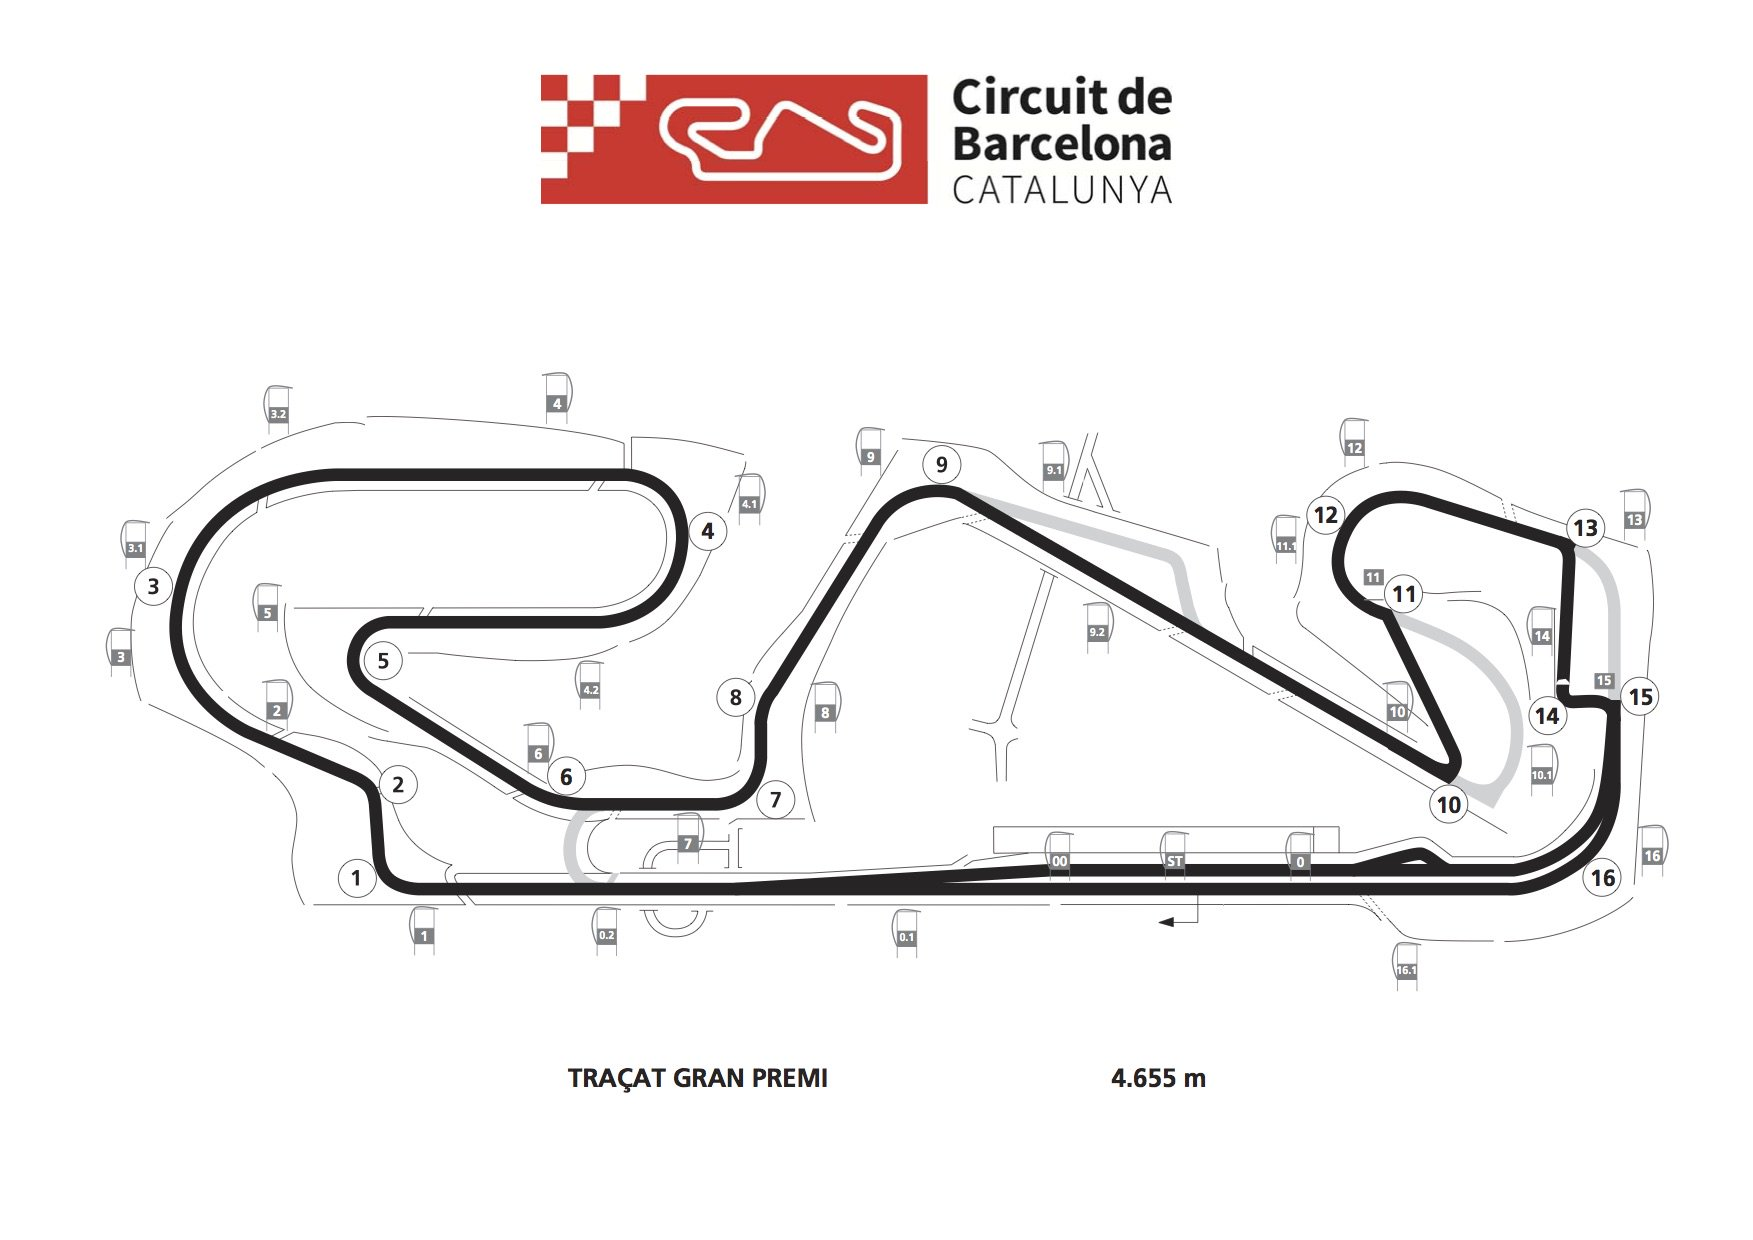 Catalunya Track Amp Schedule Modified After Salom Incident